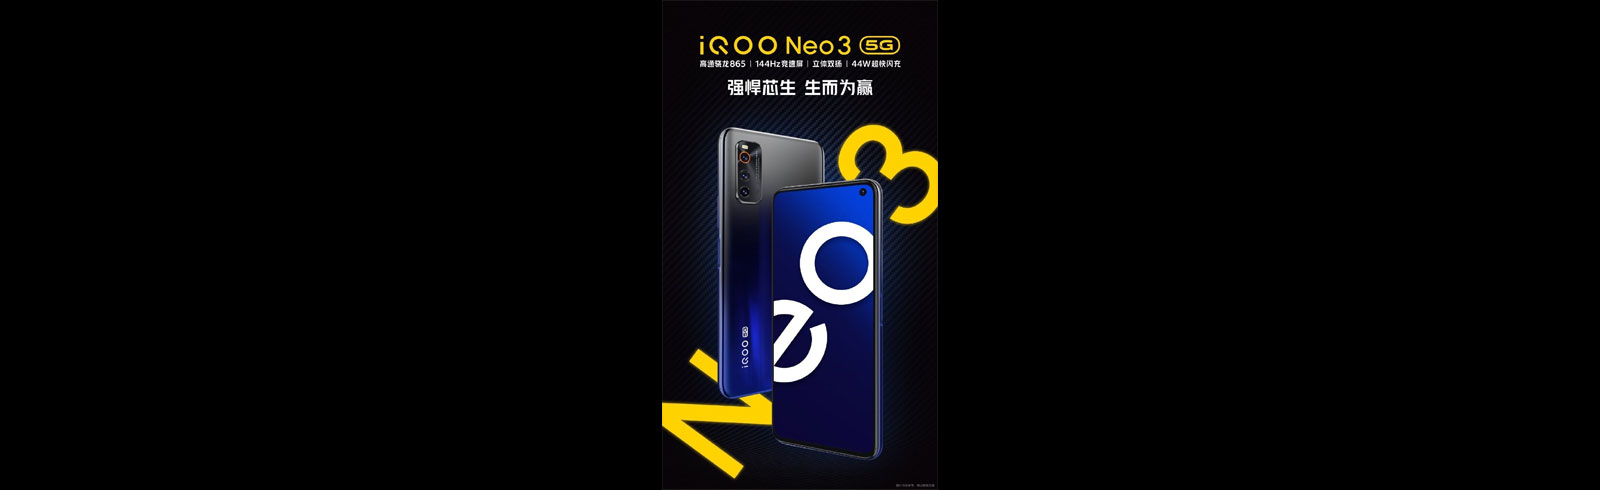 Vivo announced the iQOO Neo 3 with a 144Hz IPS display, Snapdragon 865, 44W fast charging